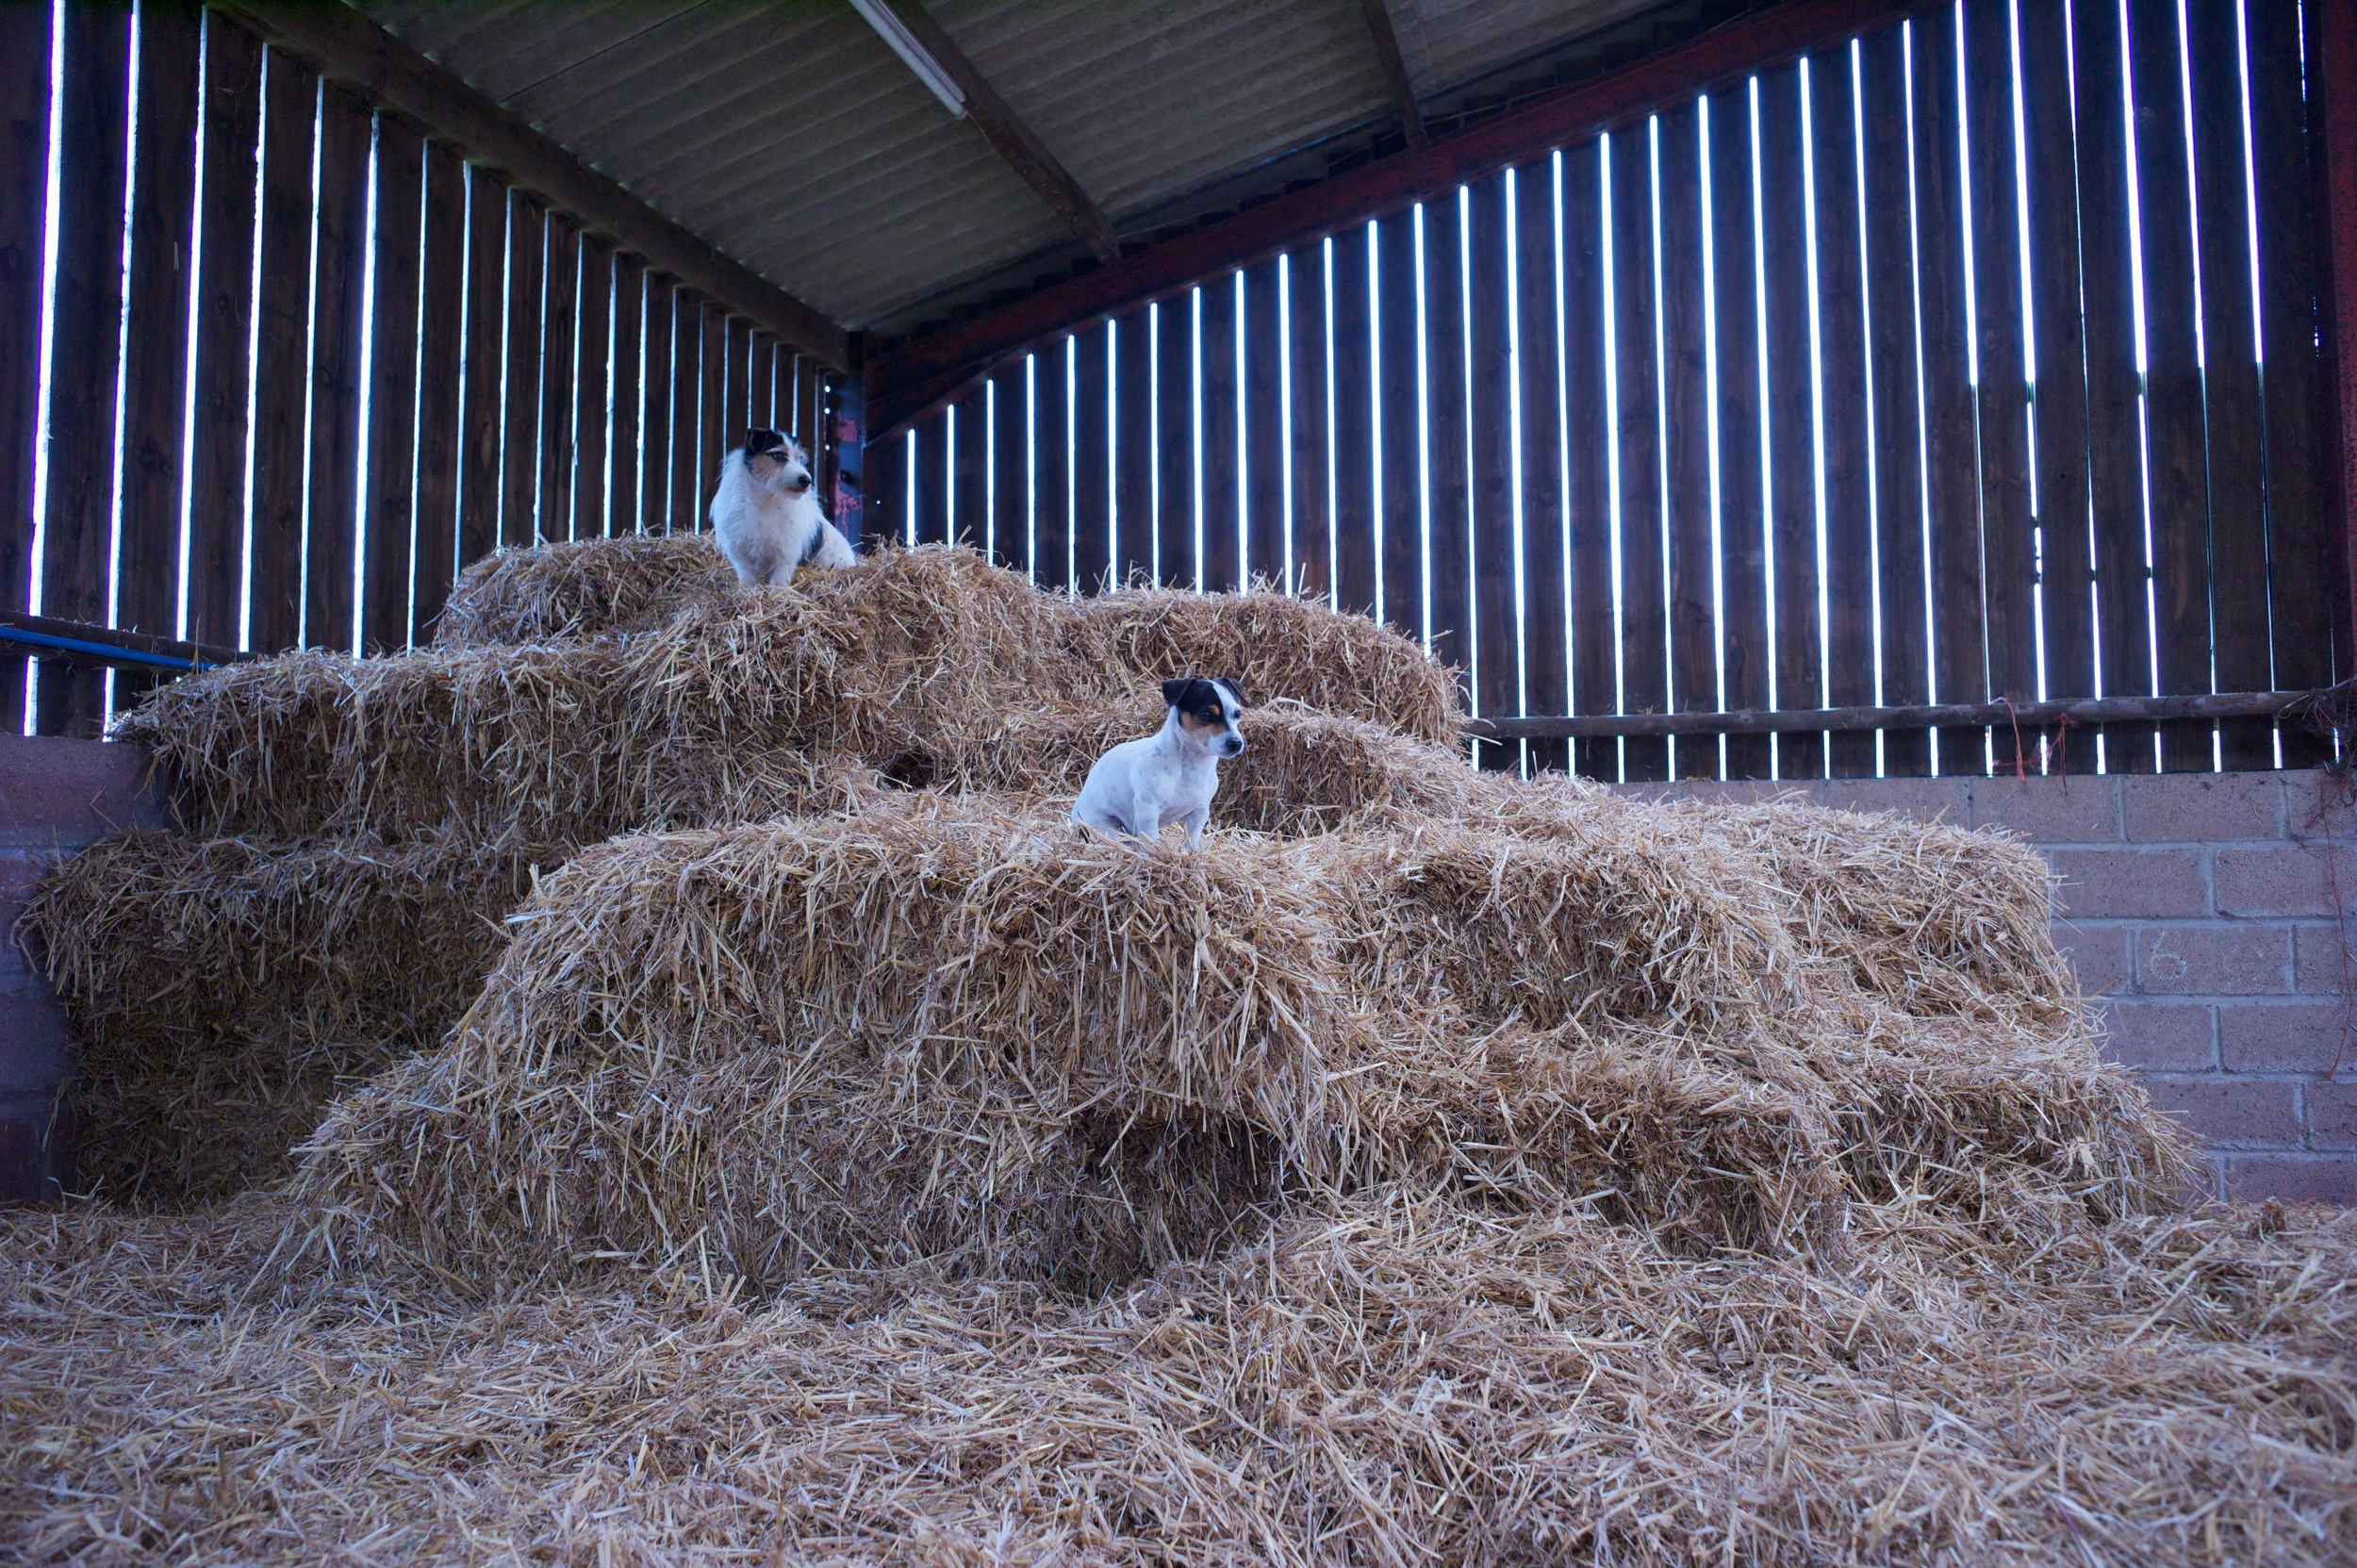 Once sawn the oak spent many years seasoning in this barn alongside dailyfarm life. Thanks to Rosie and Lilly for the wonderful pose.